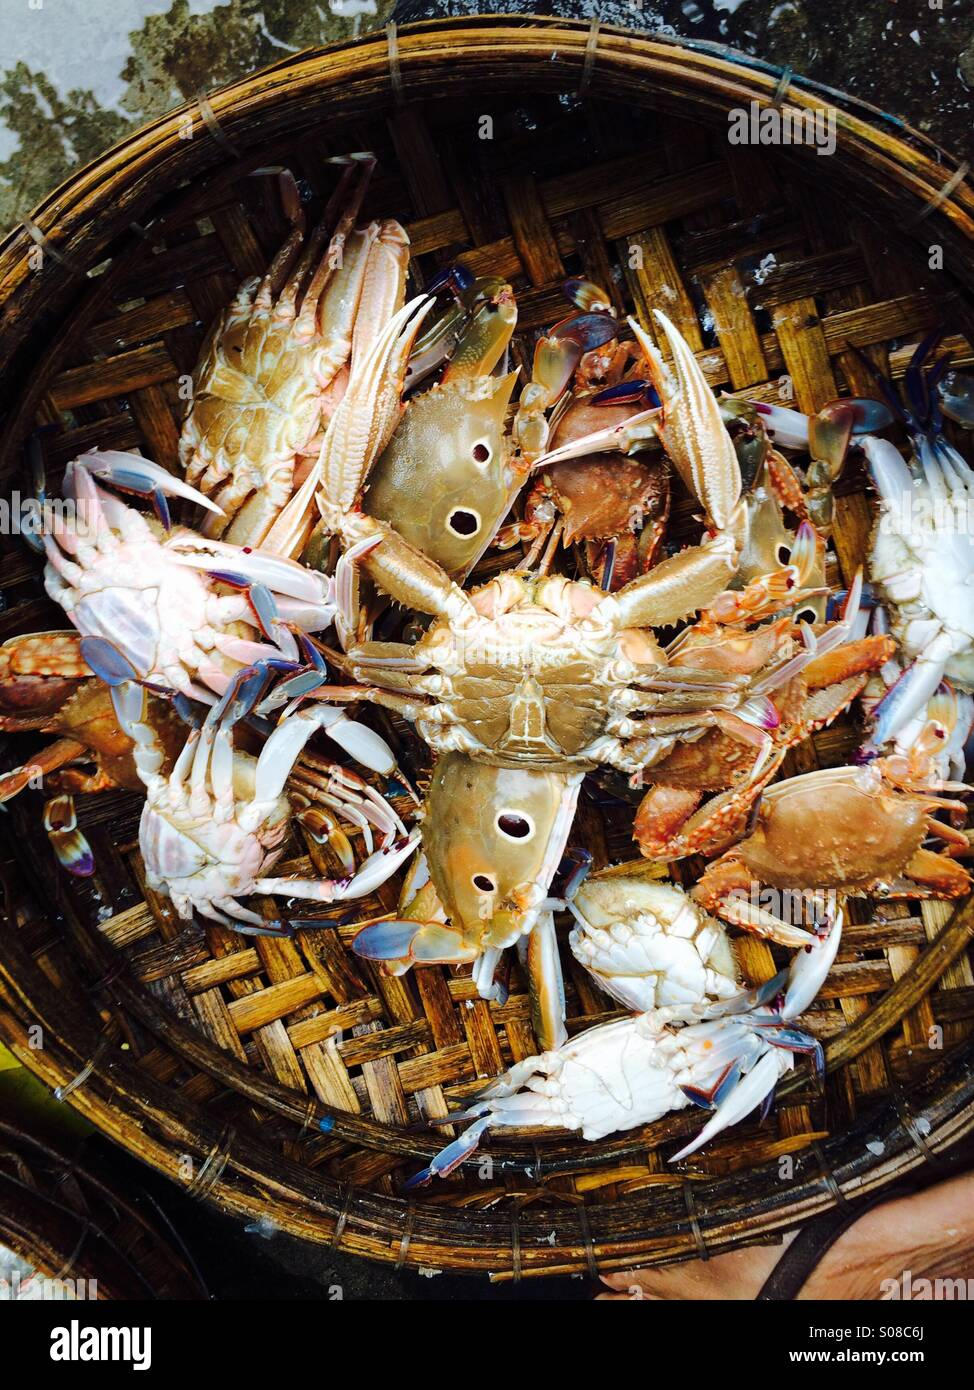 Fresh Crabs on sale at market in Hoi An, Vietnam - Stock Image